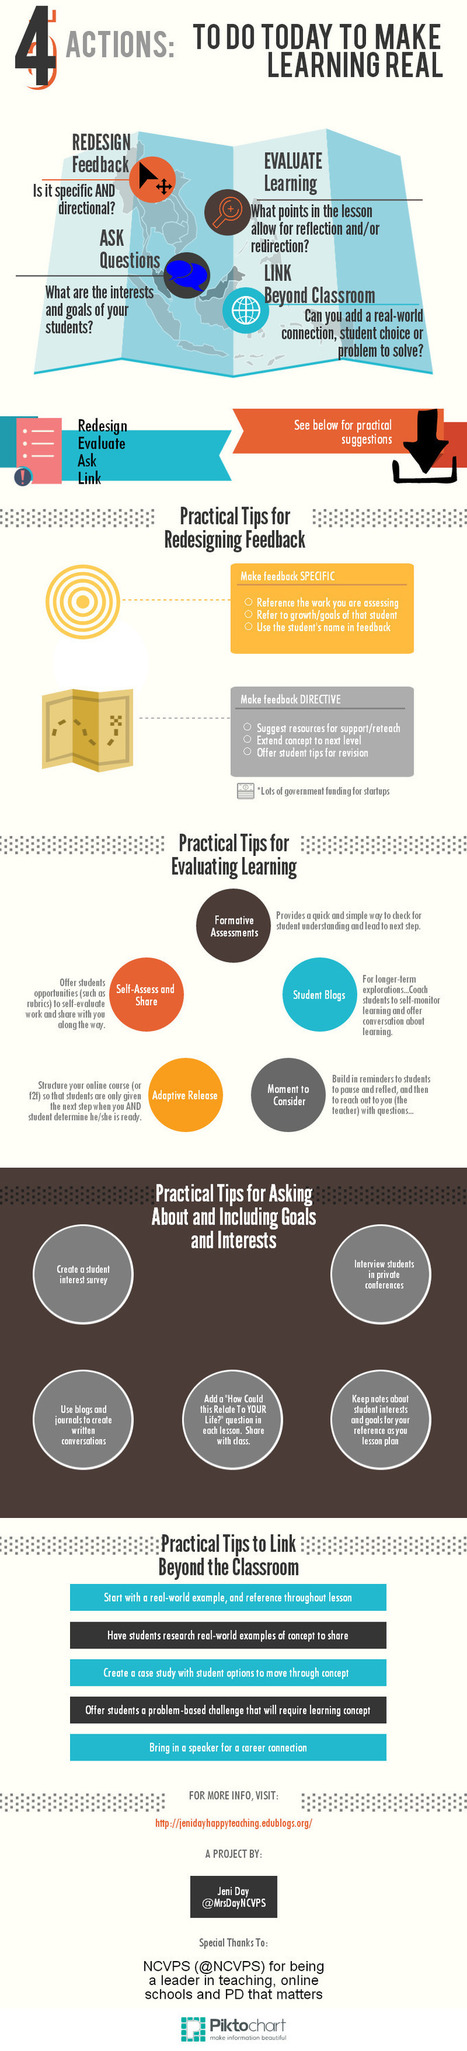 4 Steps to Real Learning - Infographic | Actualiser la pédagogie | Scoop.it